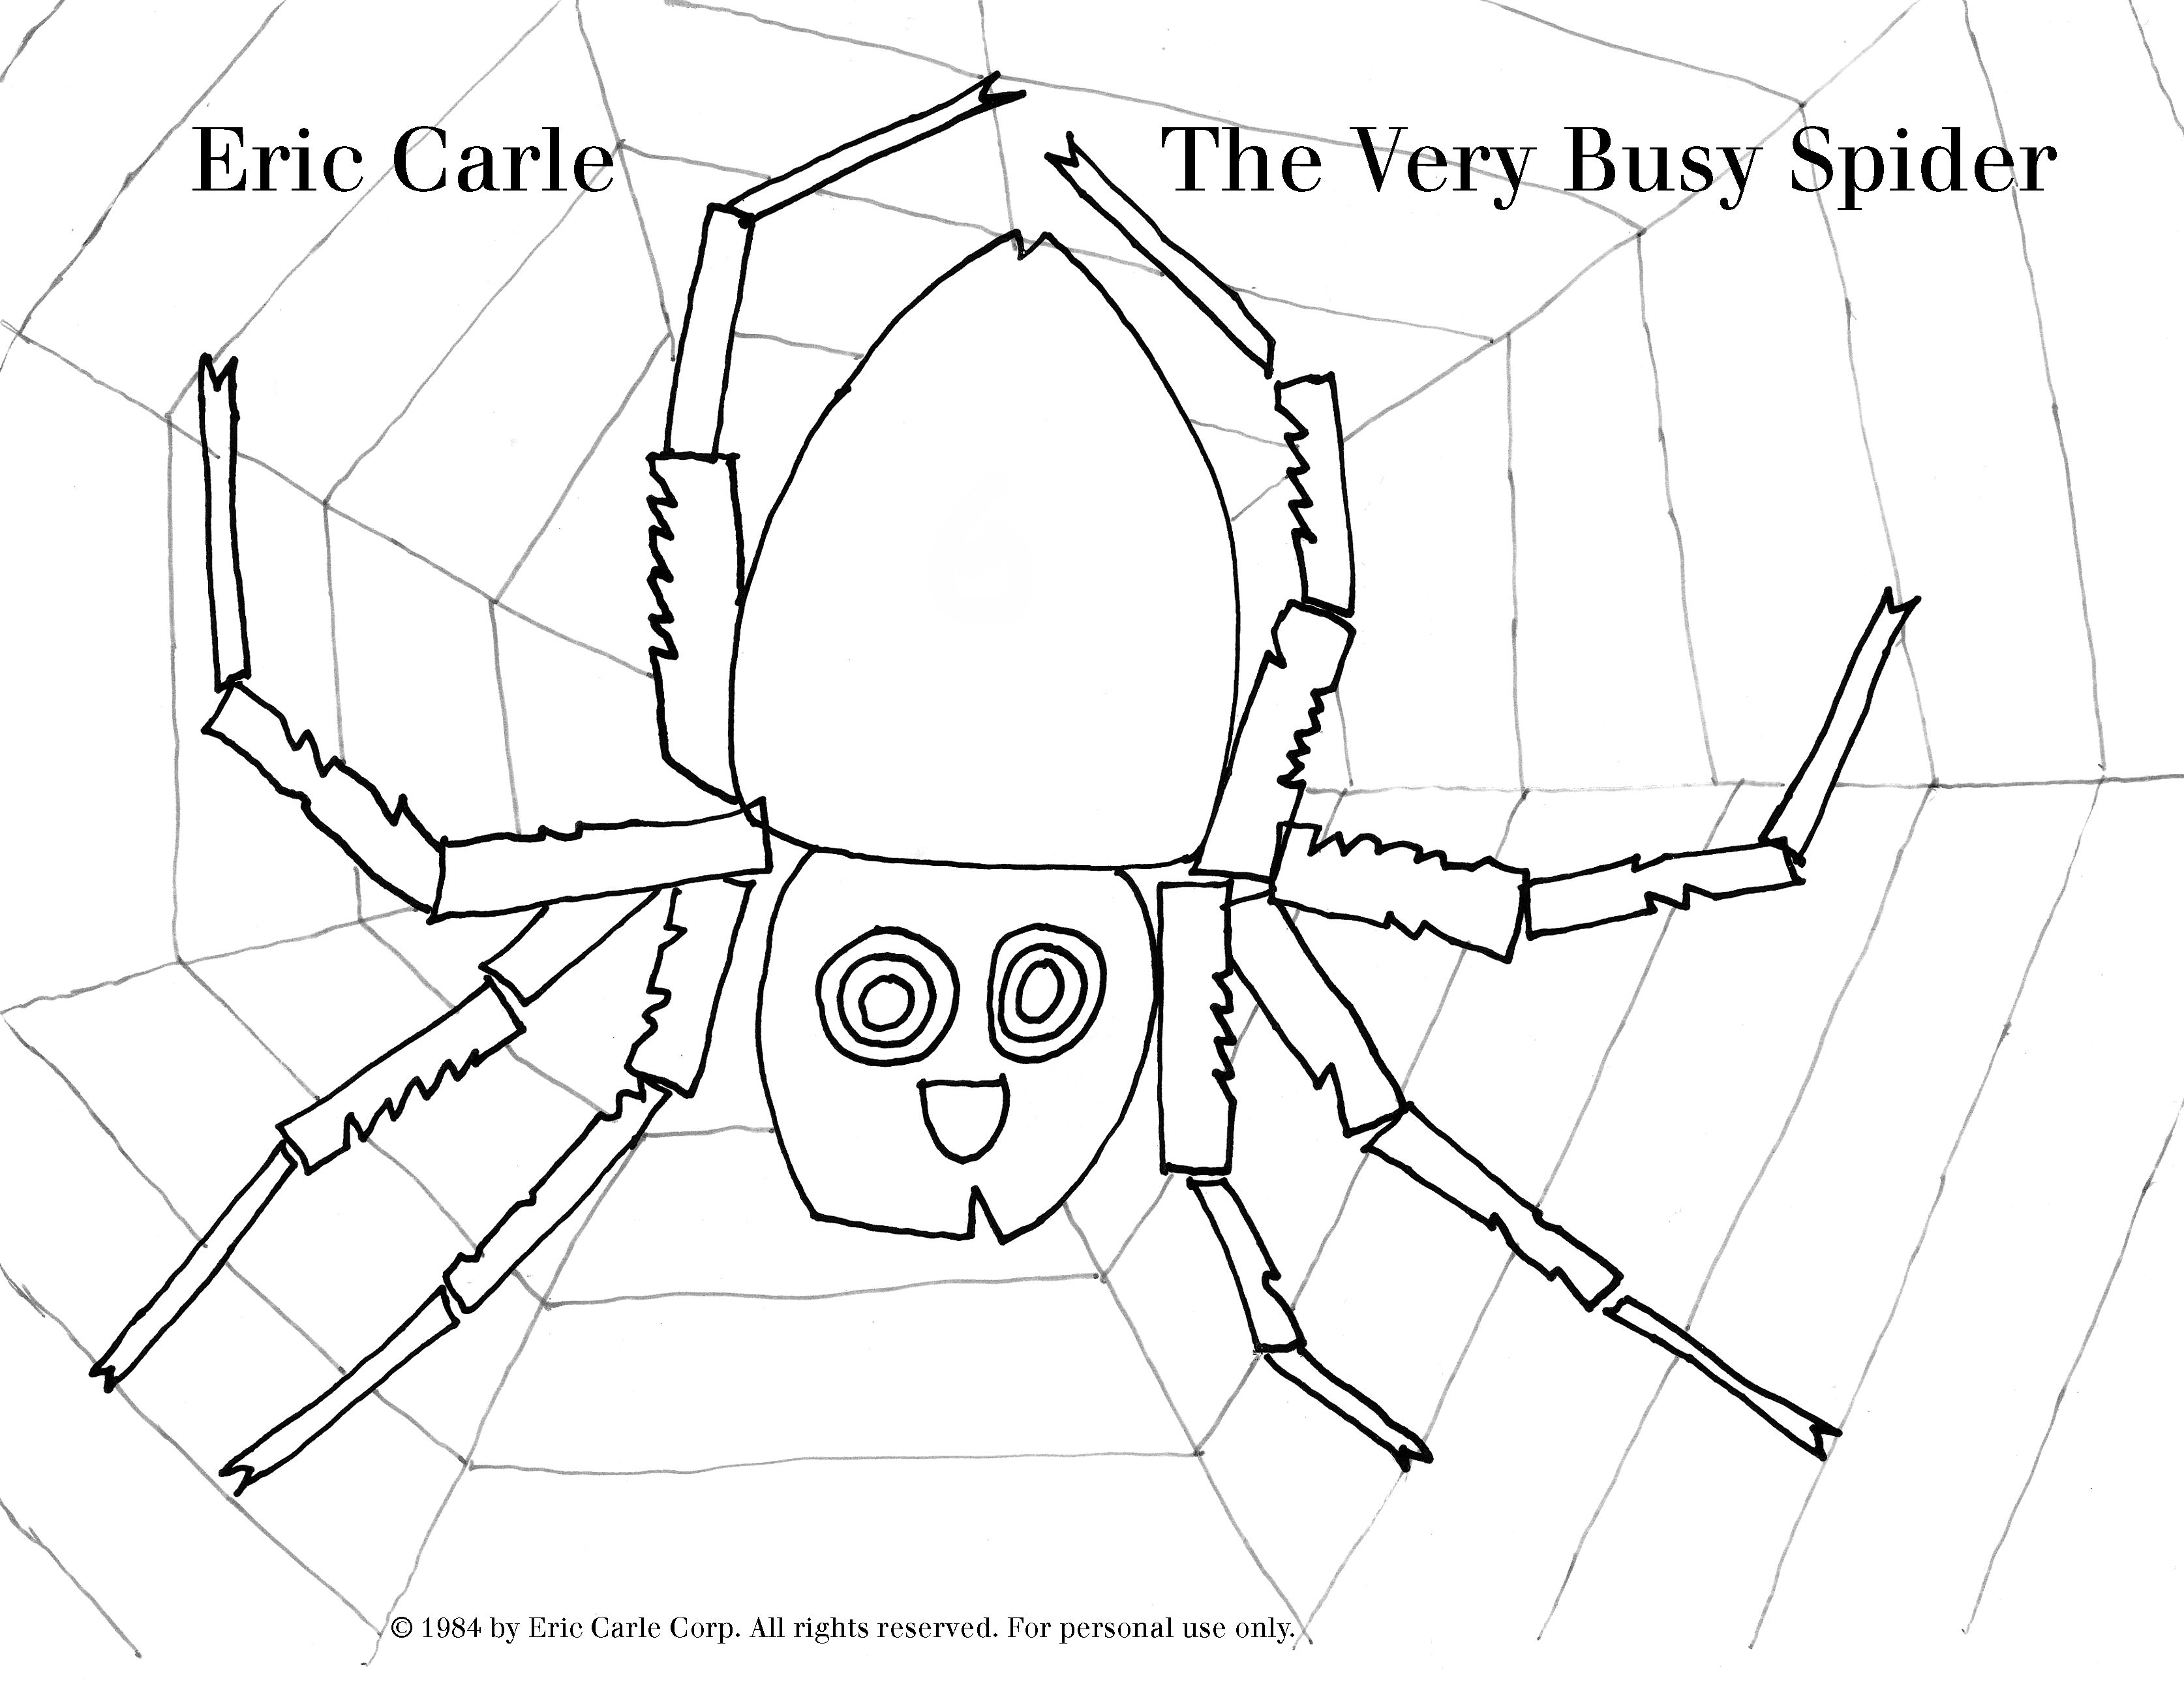 Hungry Caterpillar Coloring Pages The Official Eric Carle Web Site Coloring Page Entitlementtrap Com The Very Busy Spider Spider Coloring Page Eric Carle